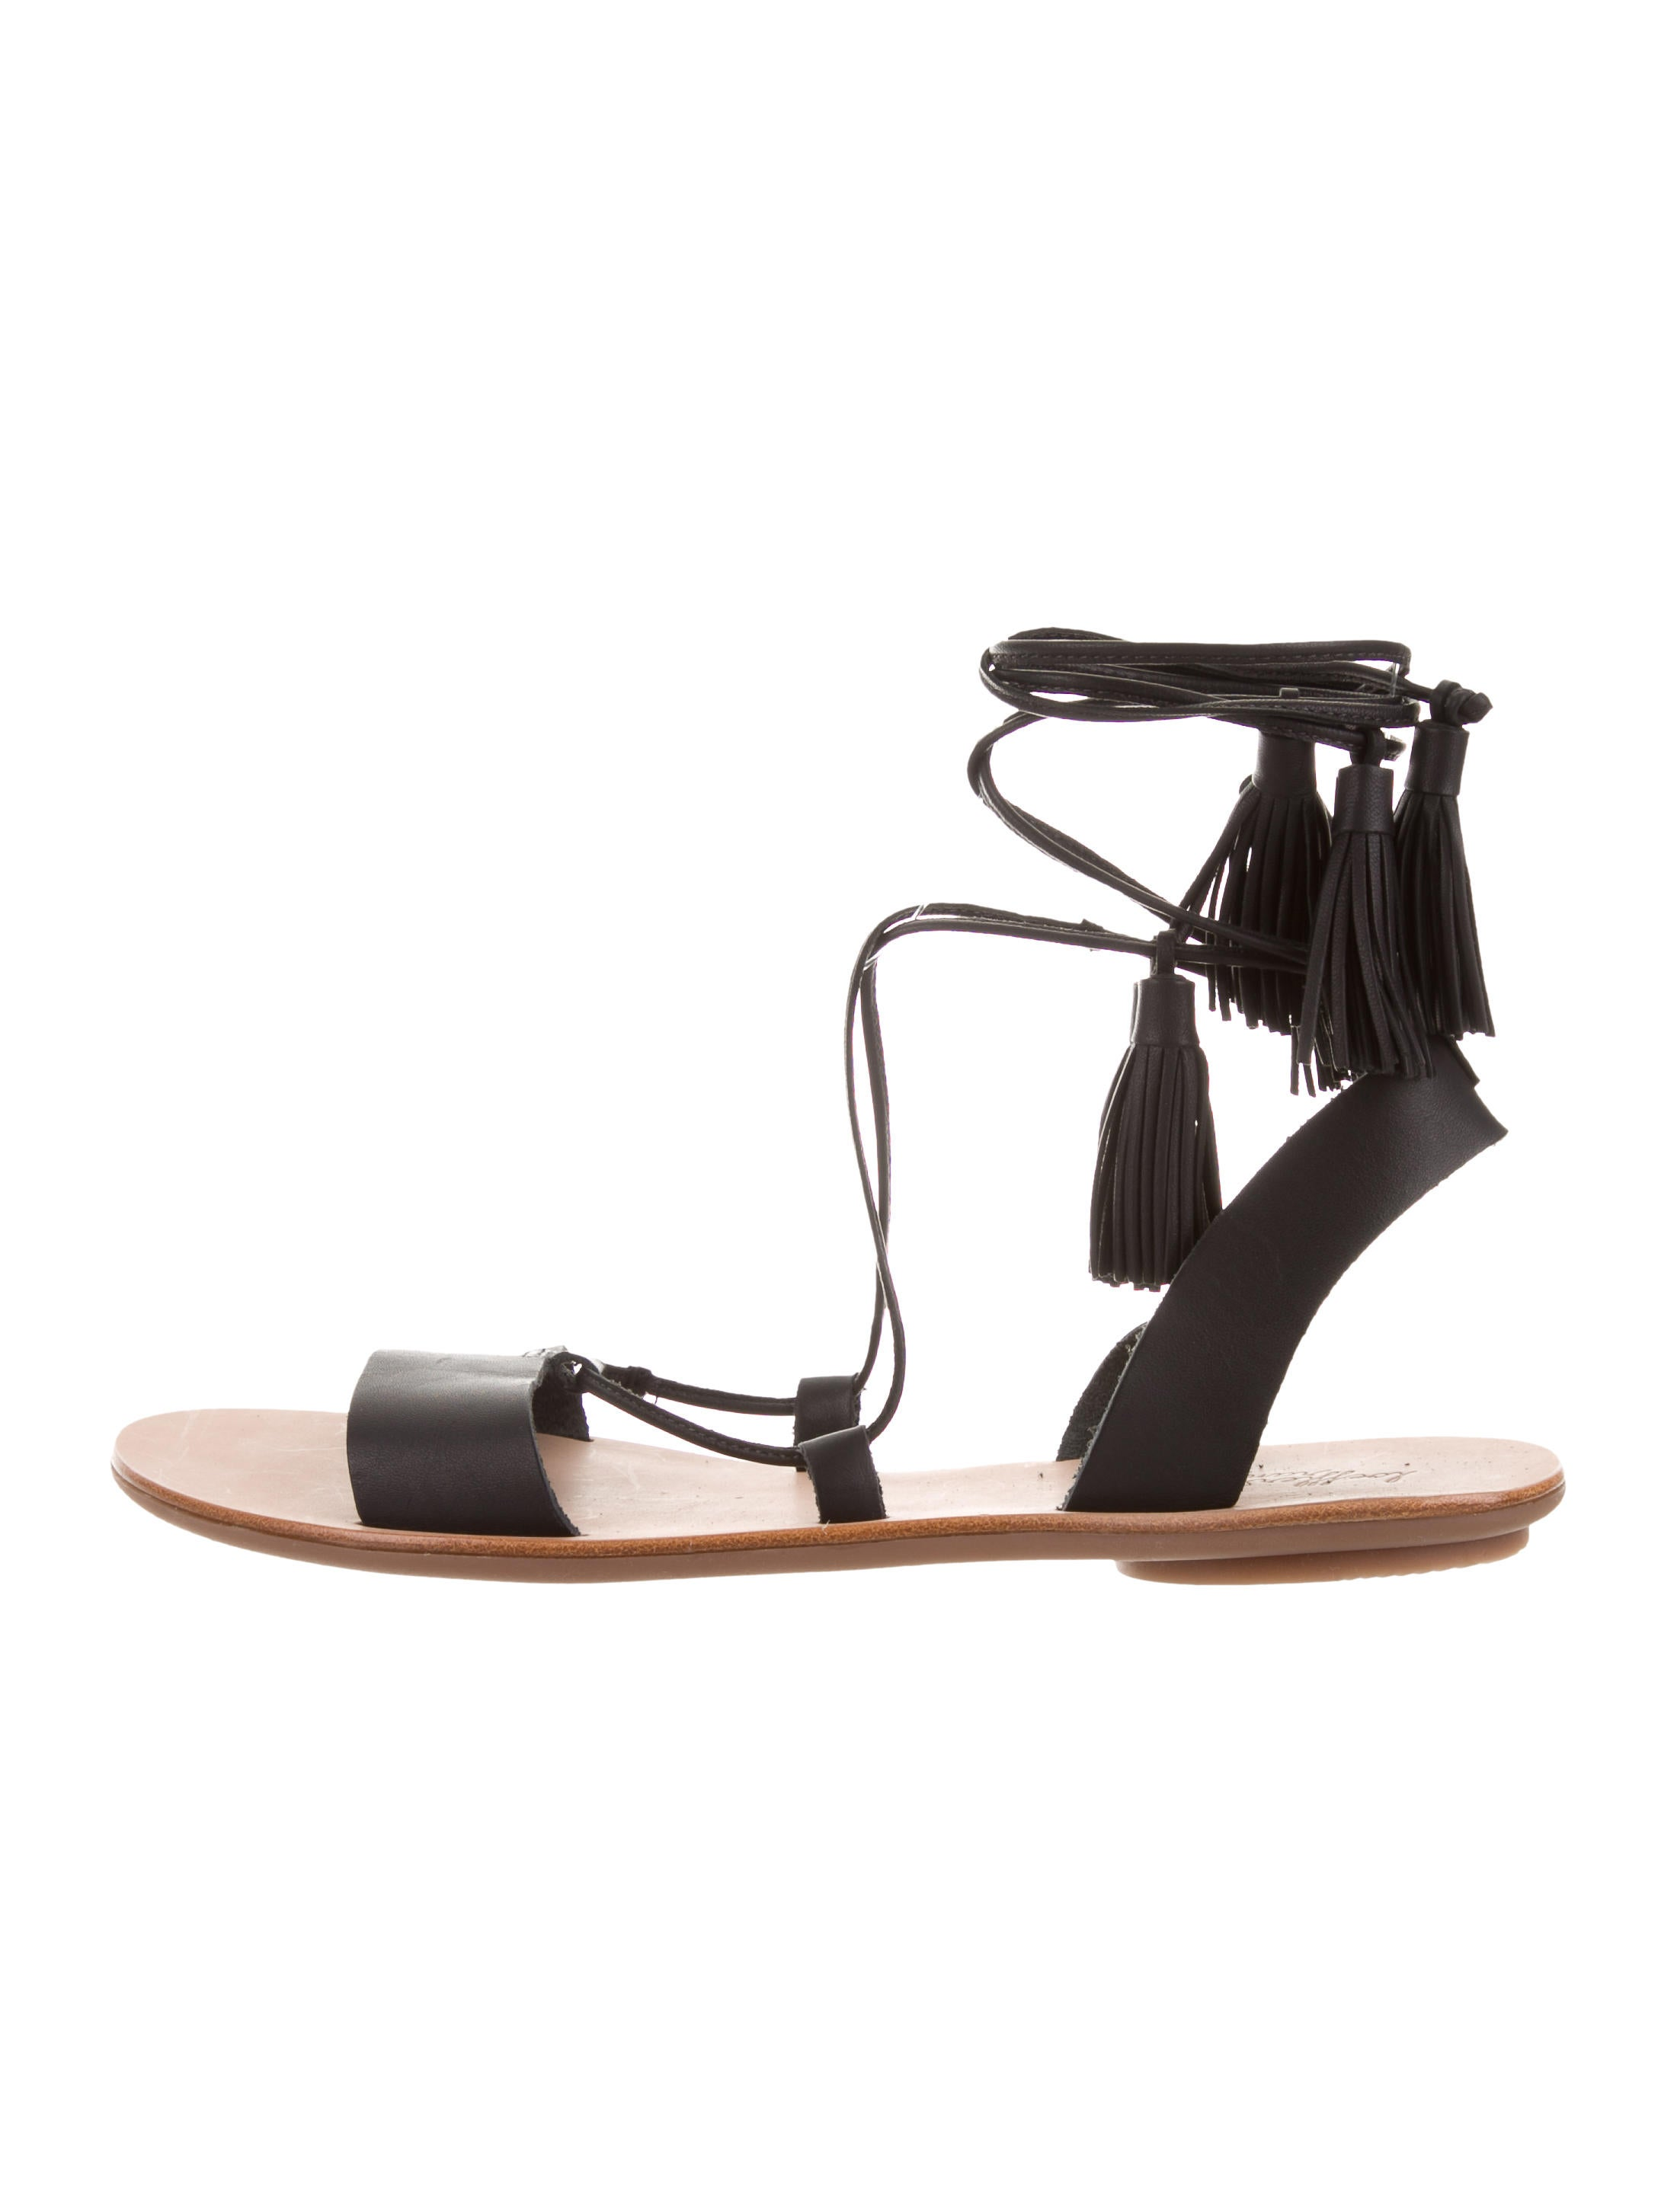 Loeffler Randall Saffron Wrap-Around Sandals w/ Tags tumblr for sale clearance low shipping fee cheap wholesale price 2014 unisex sale online A9W3WVTq